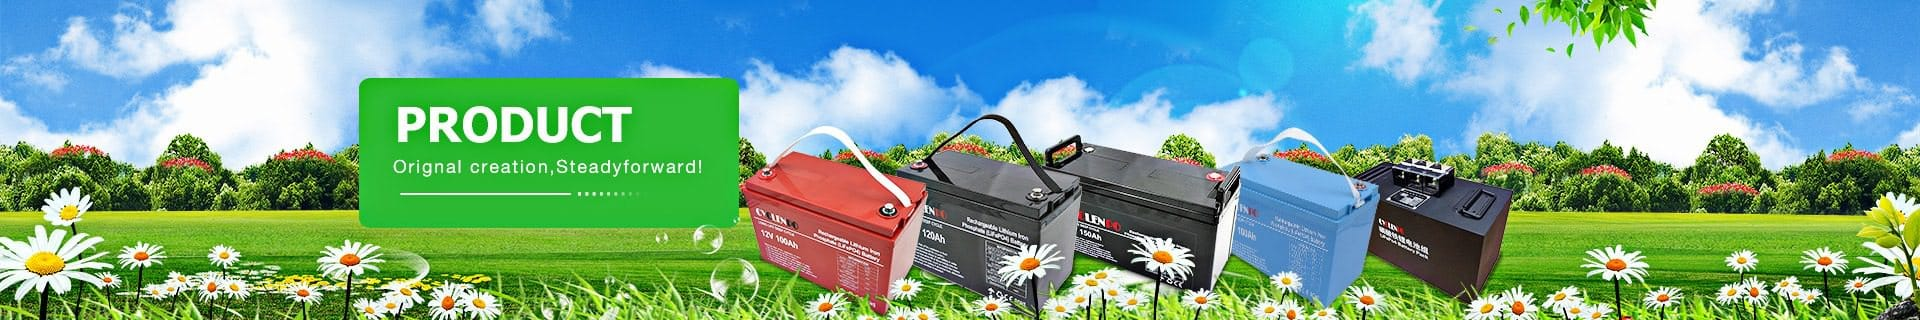 long cycle life 18650 rechargeable battery, lithium battery pack, lithium ion battery pack